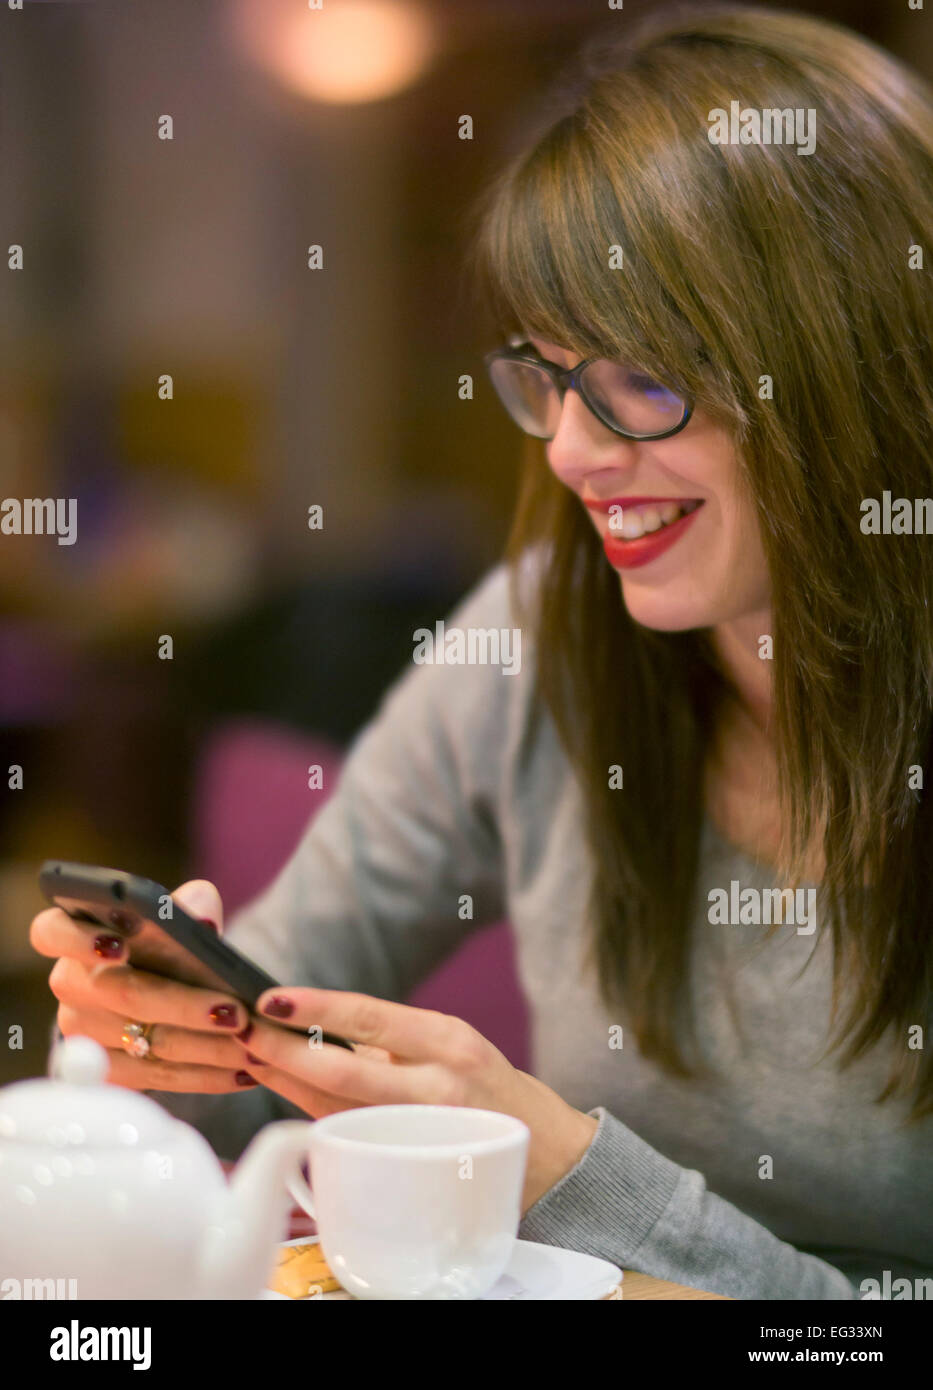 Beautiful young woman checking her mobile phone whilst having a hot drink a cosy cafe. - Stock Image